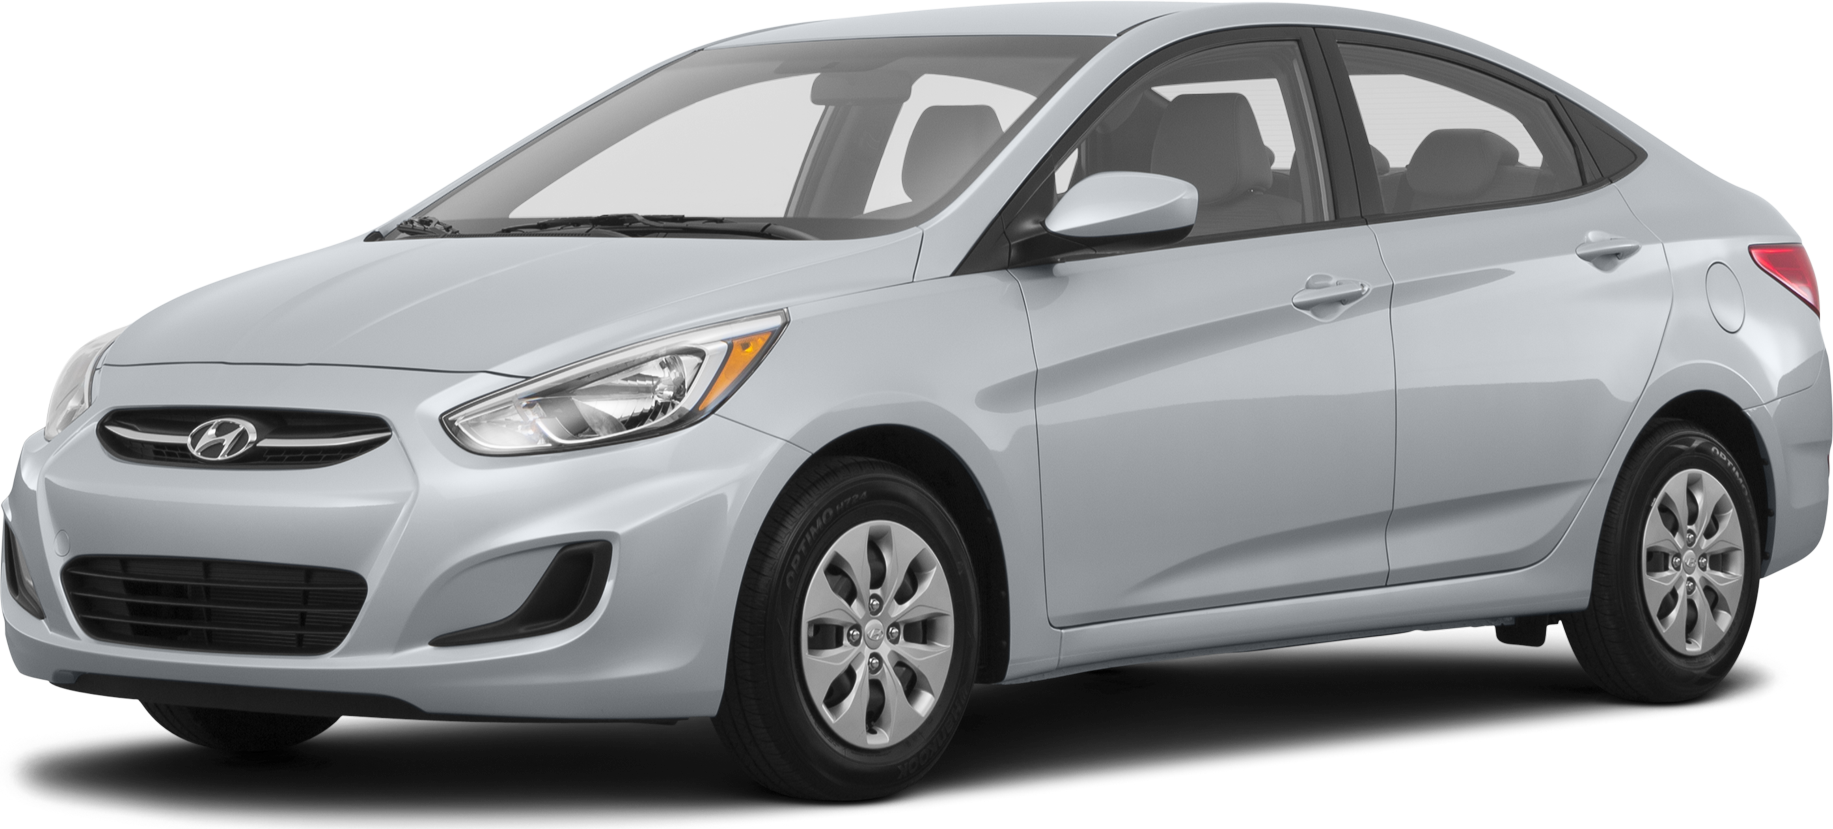 2016 Hyundai Accent Values Cars For Sale Kelley Blue Book